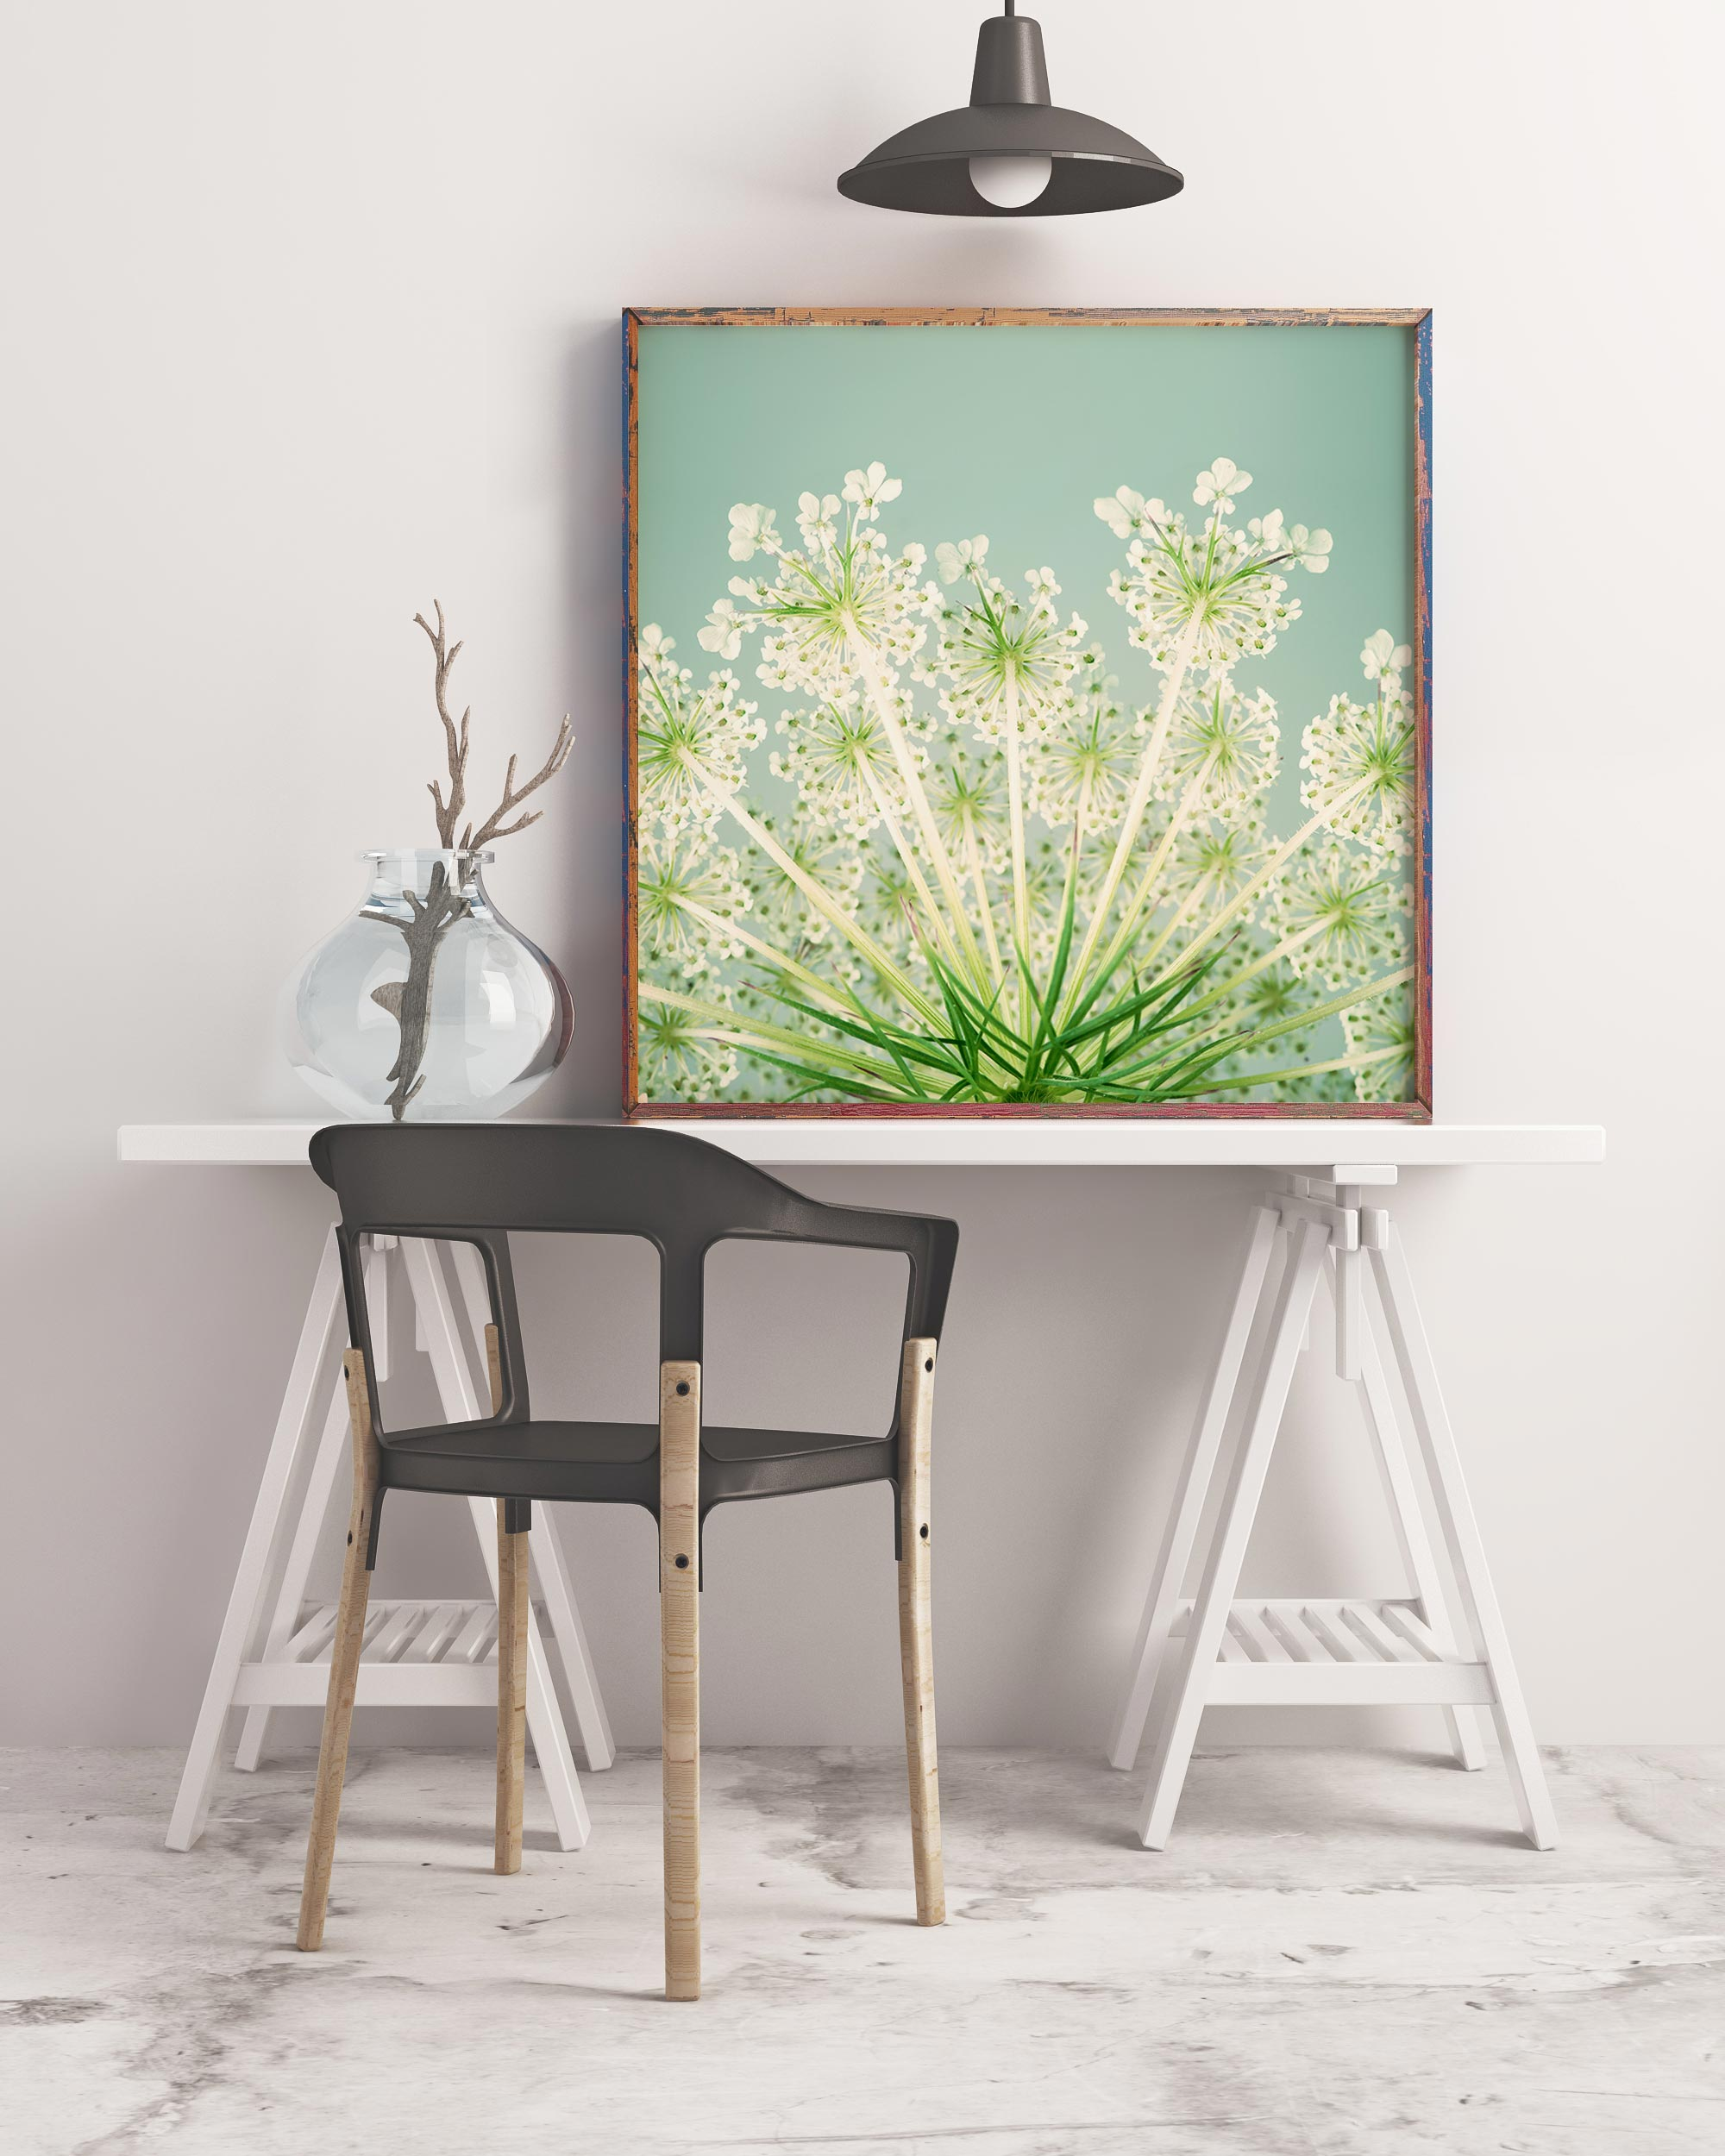 Sample framed image of queen anne's lace flower photo